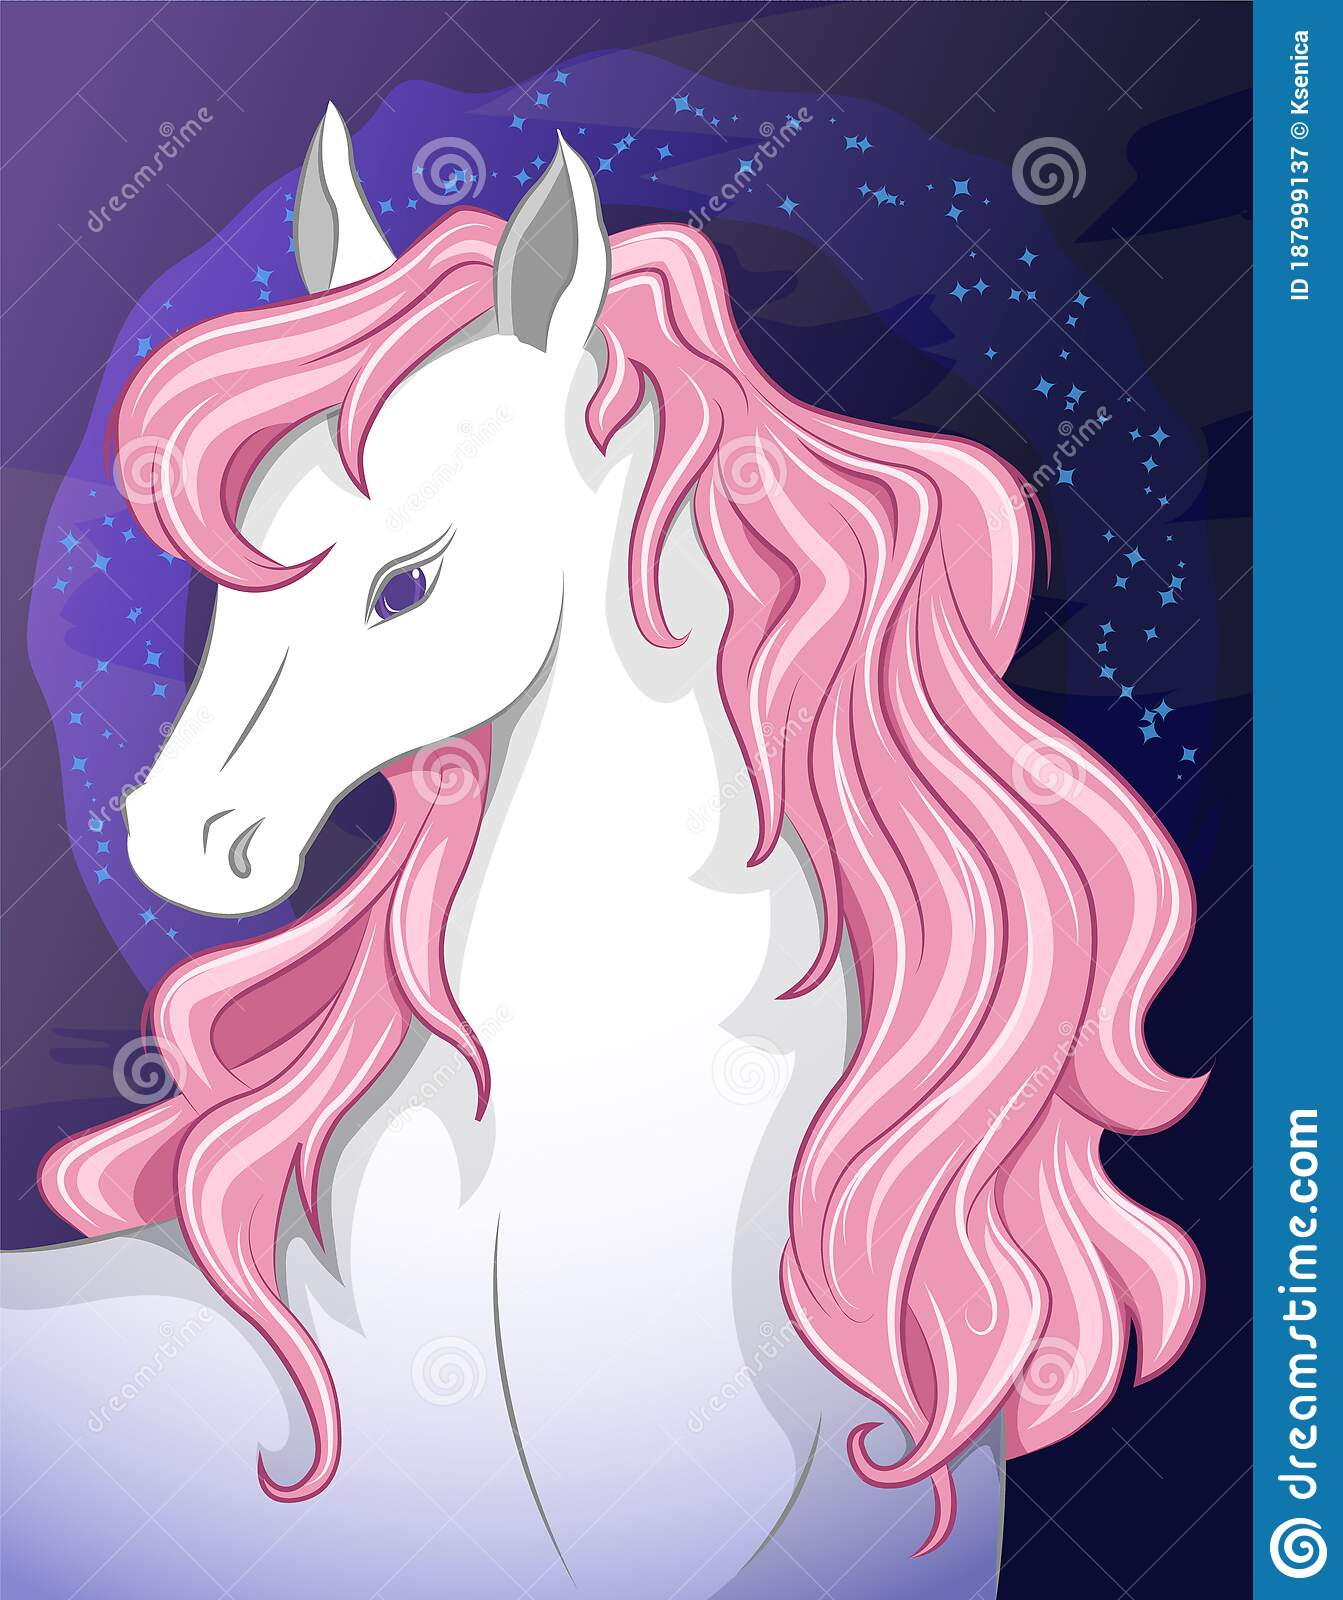 Cute White Horse With A Beautiful Pink Mane Stock Vector Illustration Of Night Head 187999137